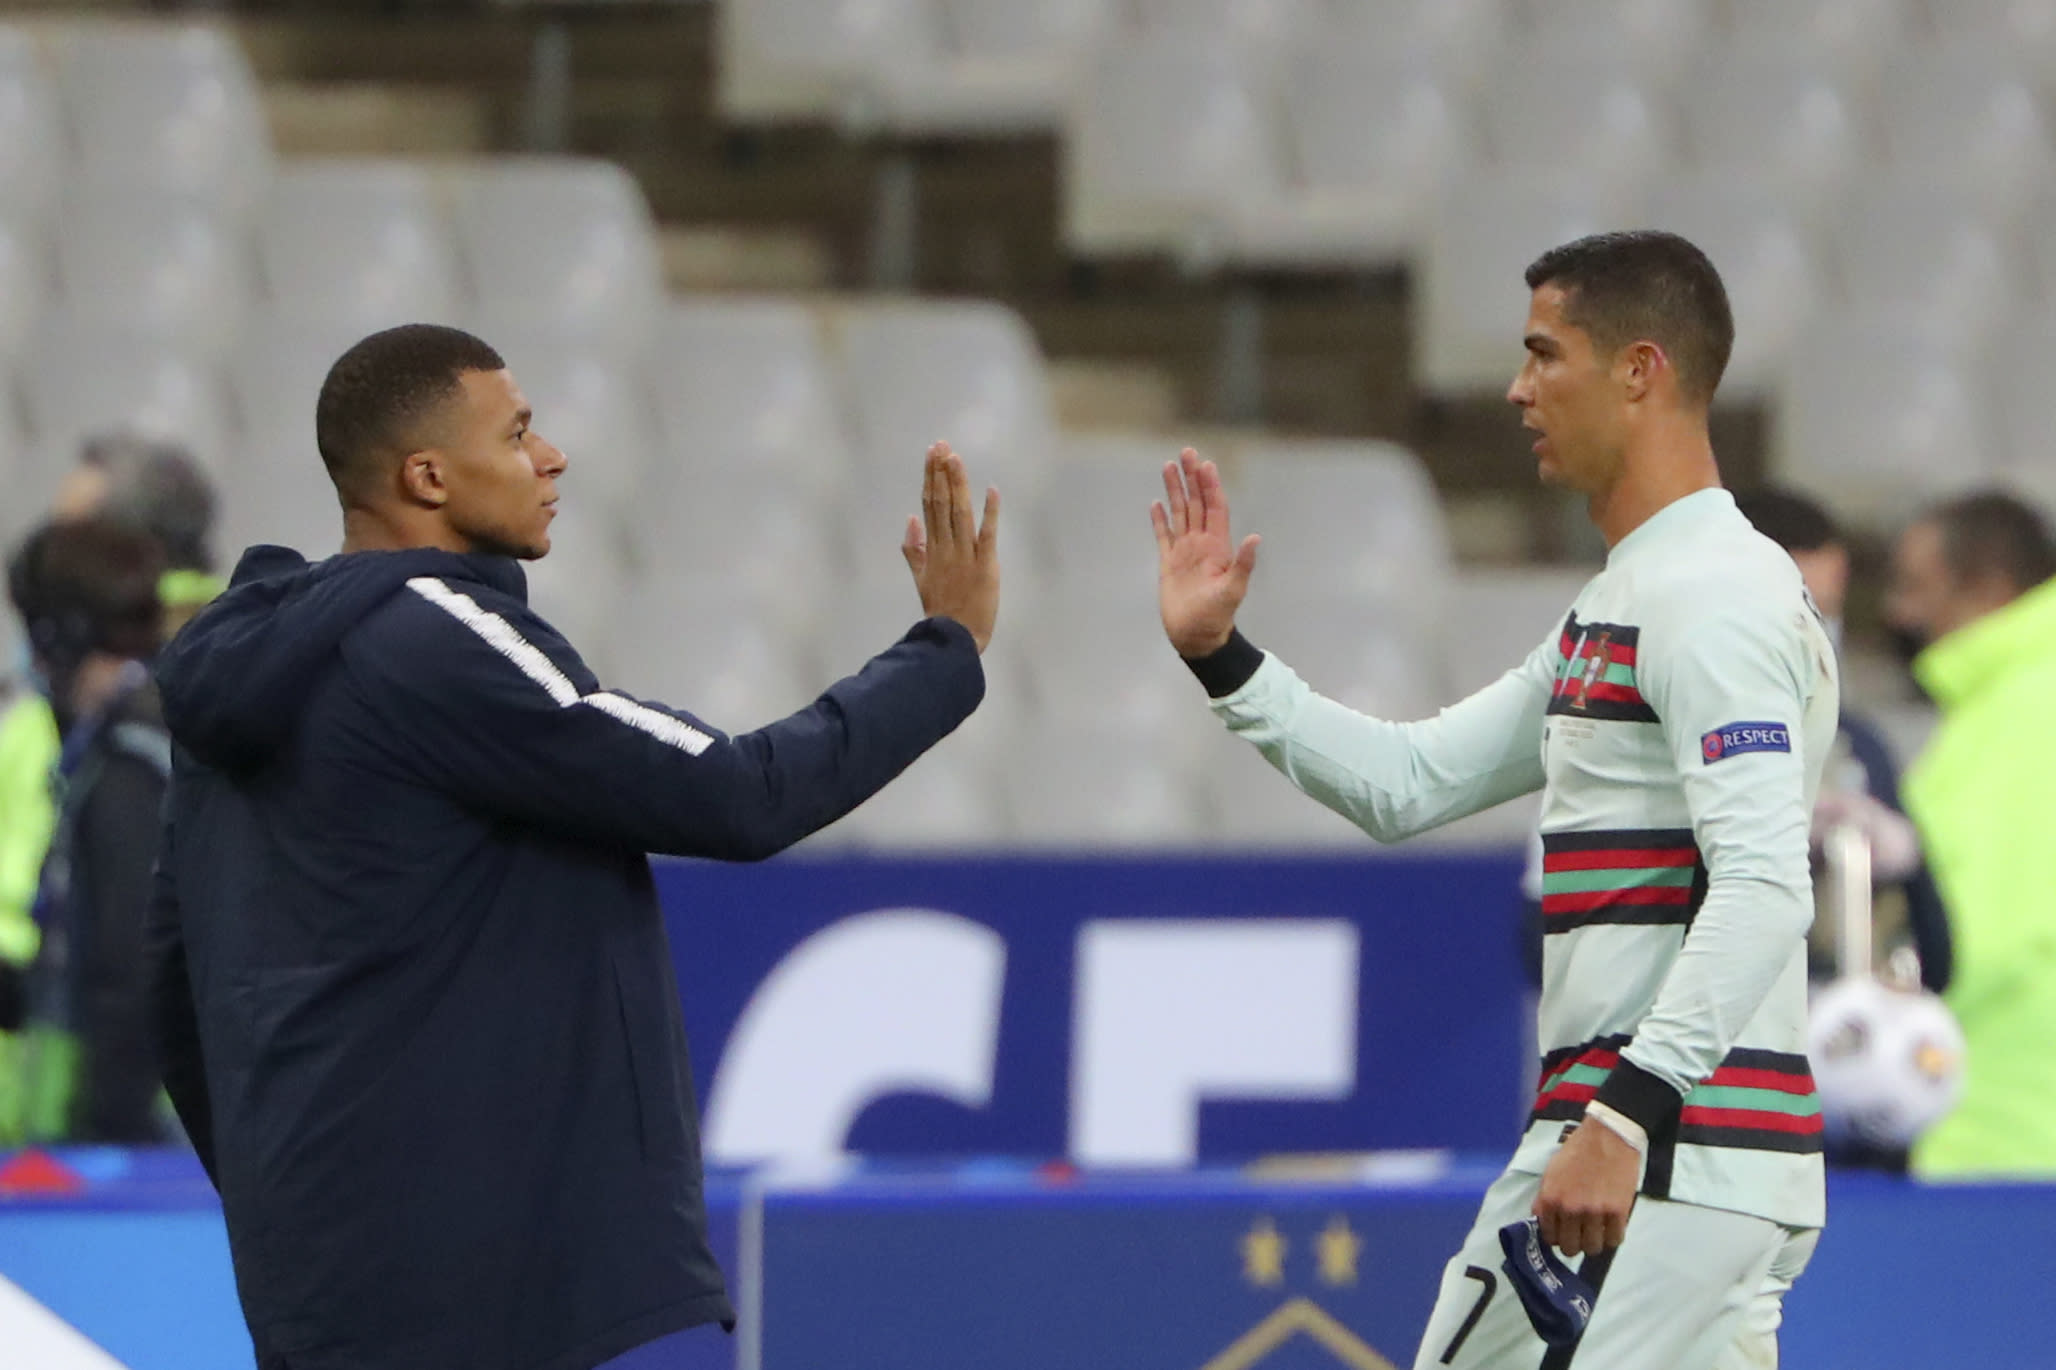 FILE - In this Sunday, Oct. 11, 2020 file photo France's Kylian Mbappe and Portugal's Cristiano Ronaldo, right, greet each other before the UEFA Nations League soccer match between France and Portugal at the Stade de France in Saint-Denis, north of Paris, France. The Portuguese soccer federation says Cristiano Ronaldo has tested positive for the coronavirus. The federation says Ronaldo is doing well and has no symptoms. He has been dropped from the country's Nations League match against Sweden on Wednesday. (AP Photo/Thibault Camus, File)